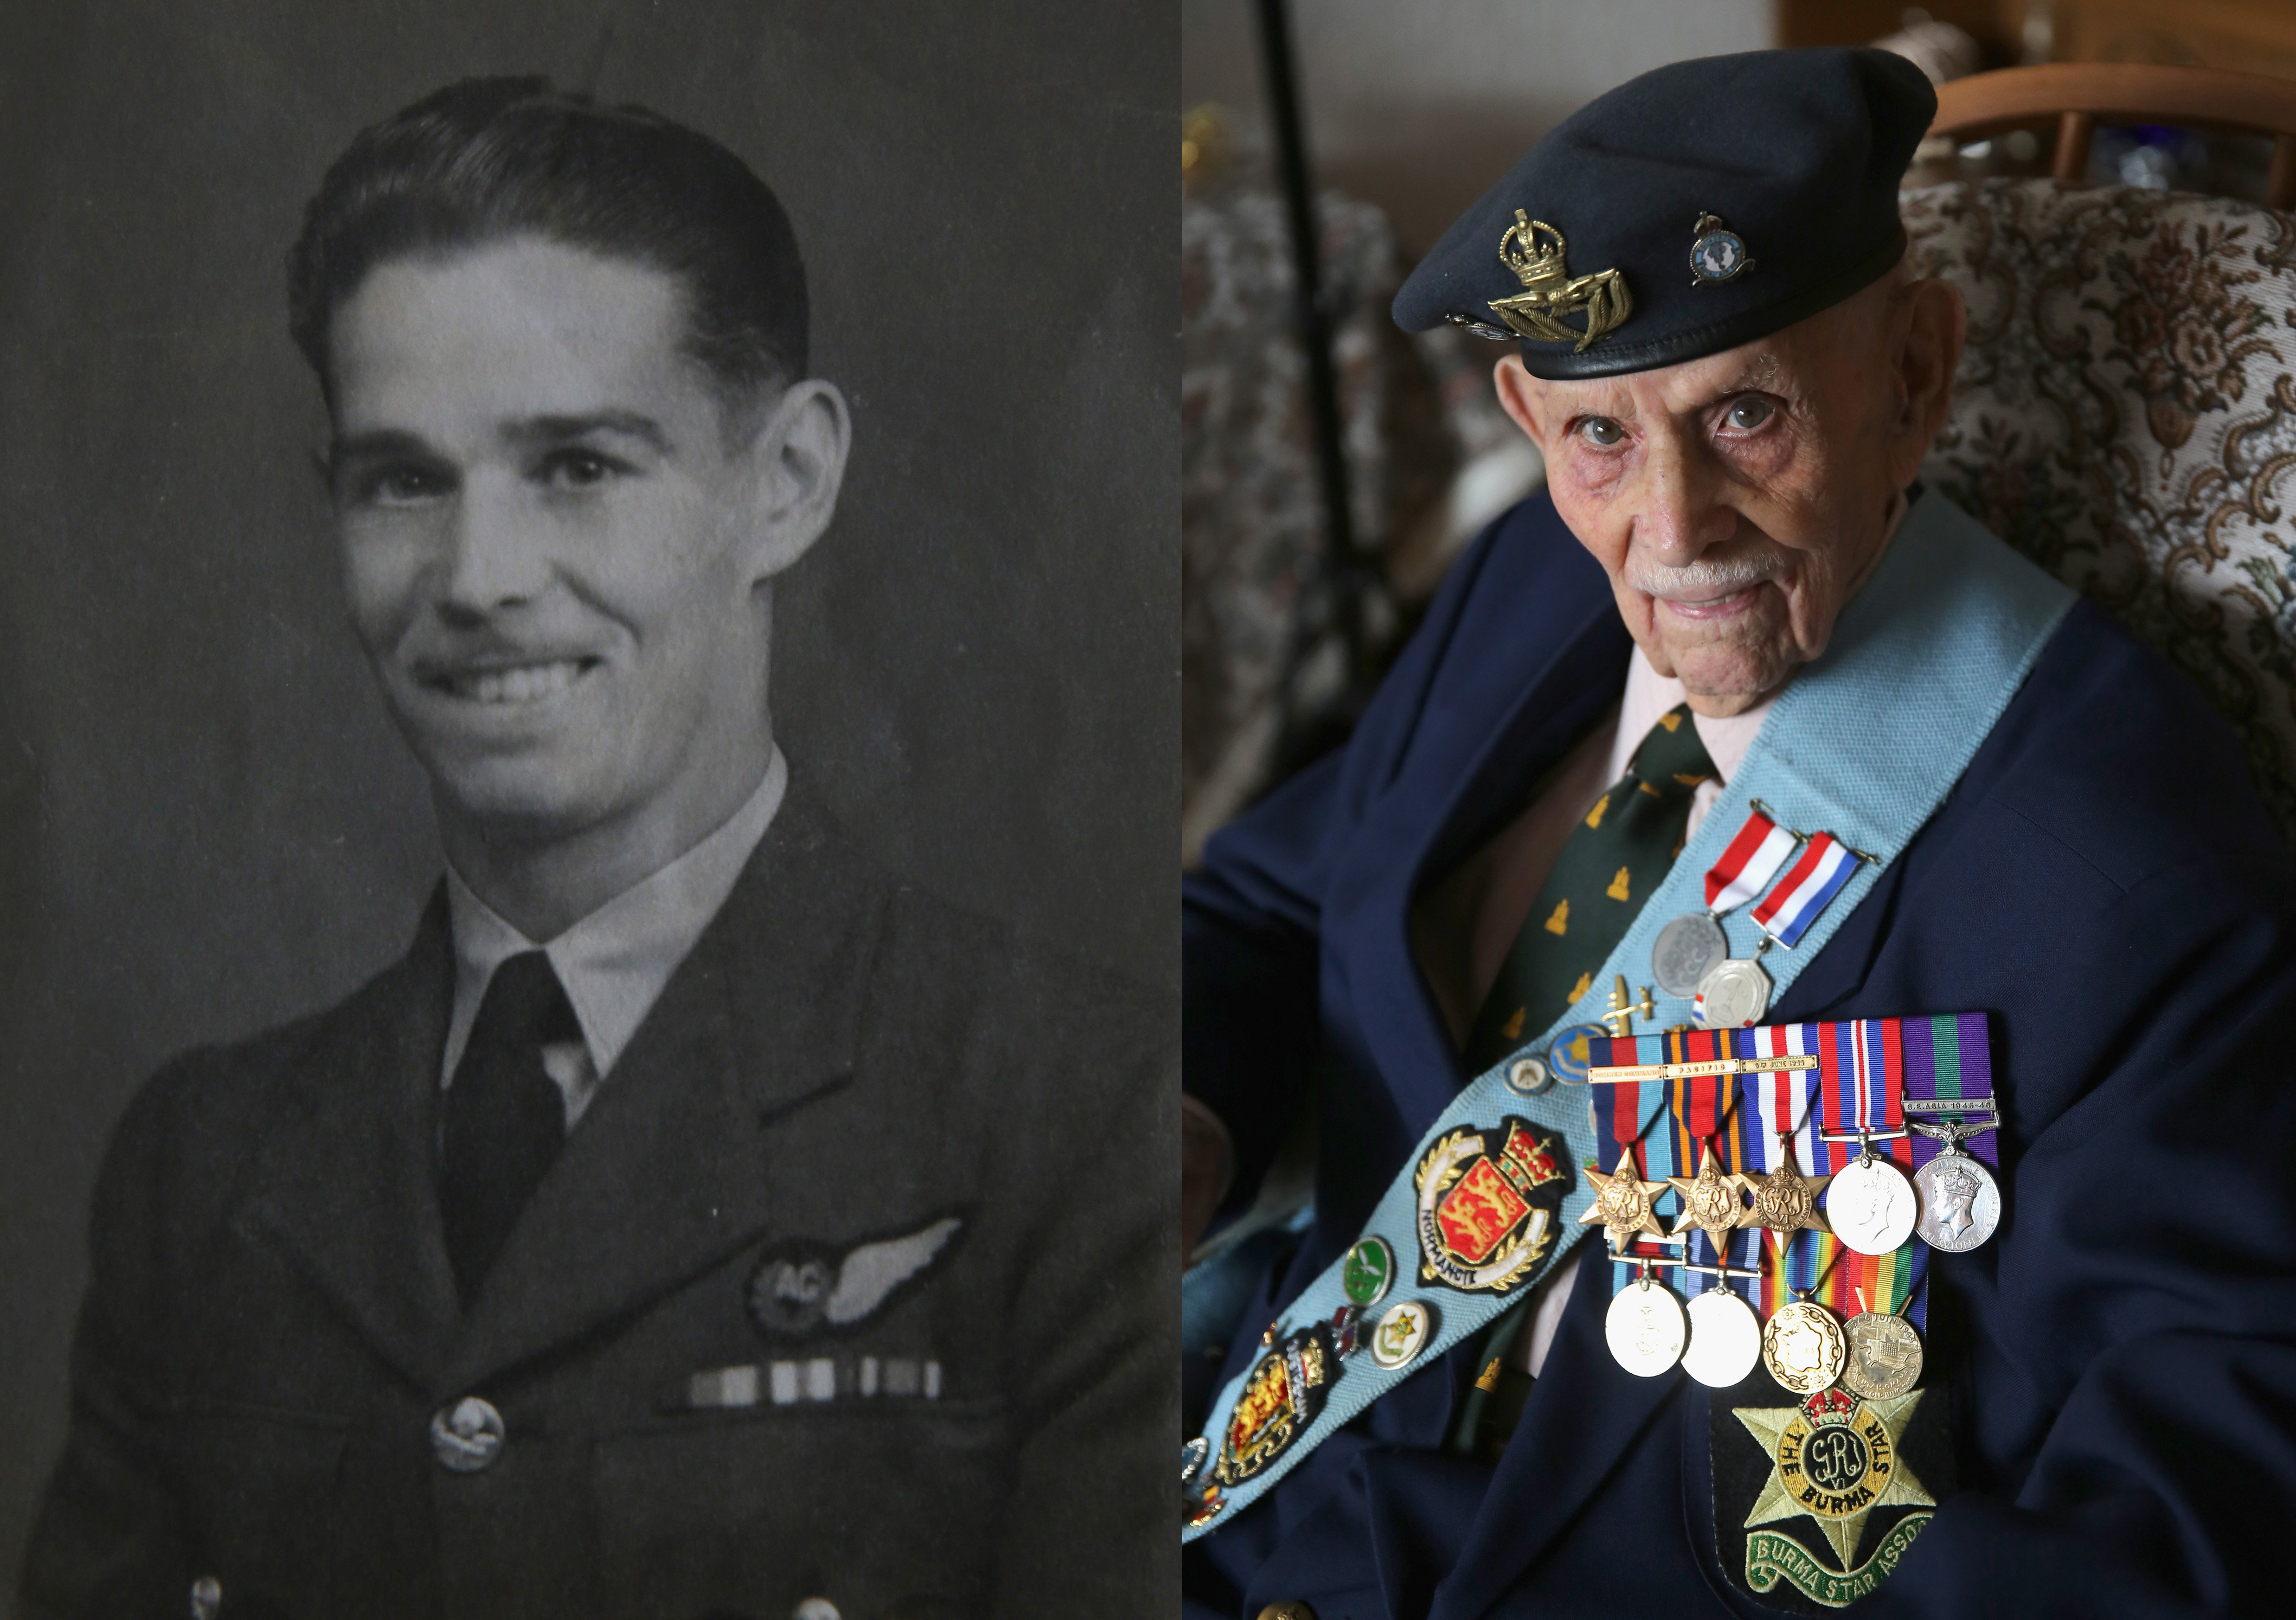 WWII veteran Bill Caster posing as a young RAF airman during WWII and at his home, age 93, wearing his campaign medals on Aug. 4, 2015 in Redcar, England.